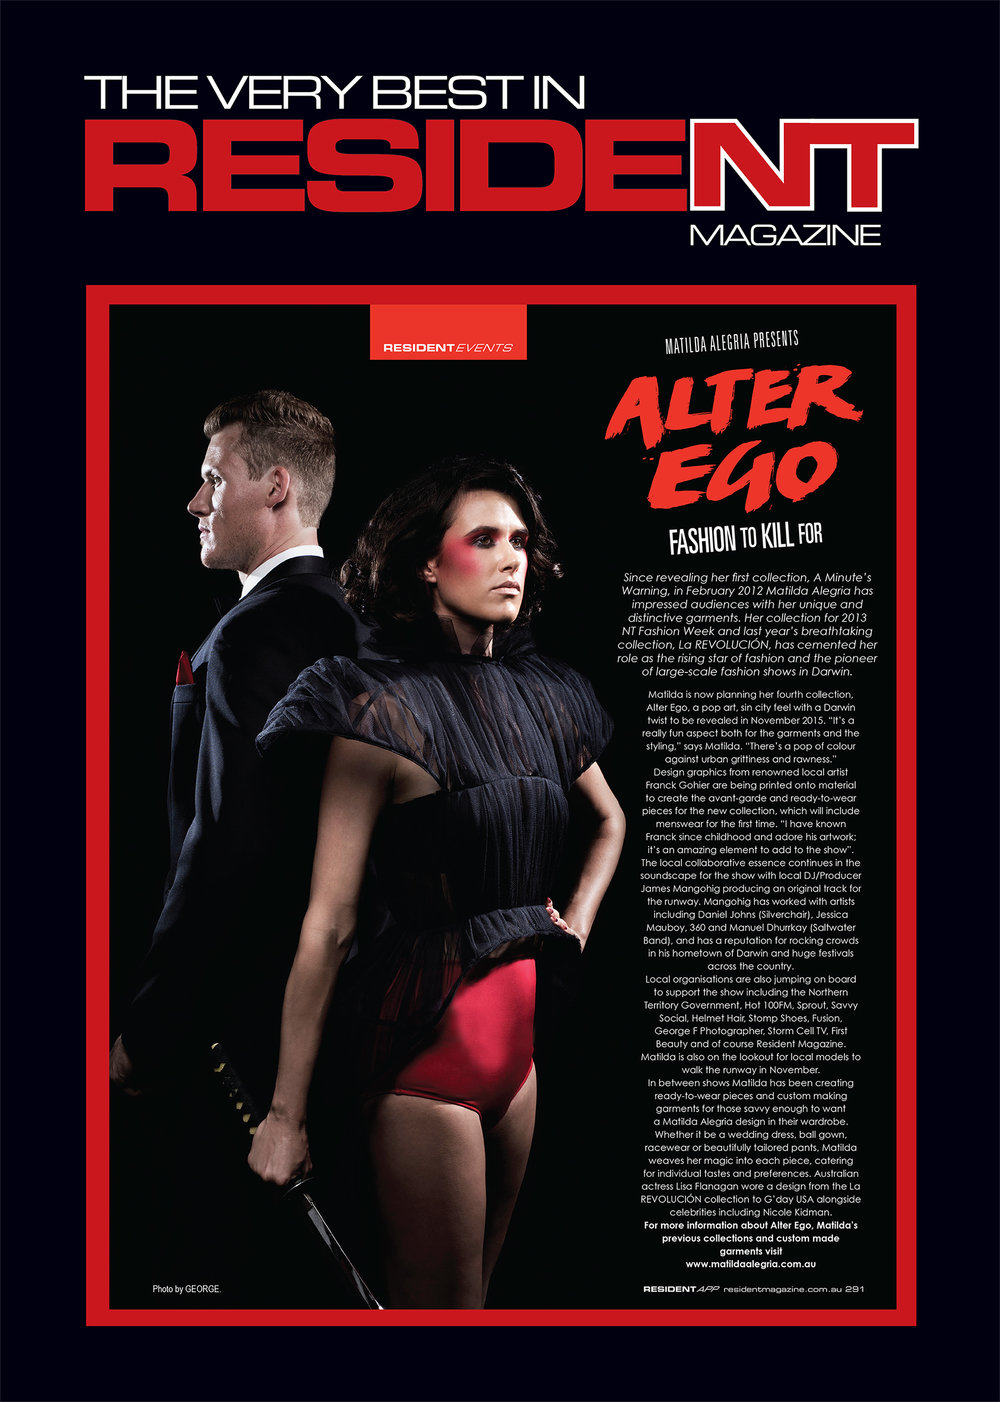 Resident Magazine feature, Alter Ego